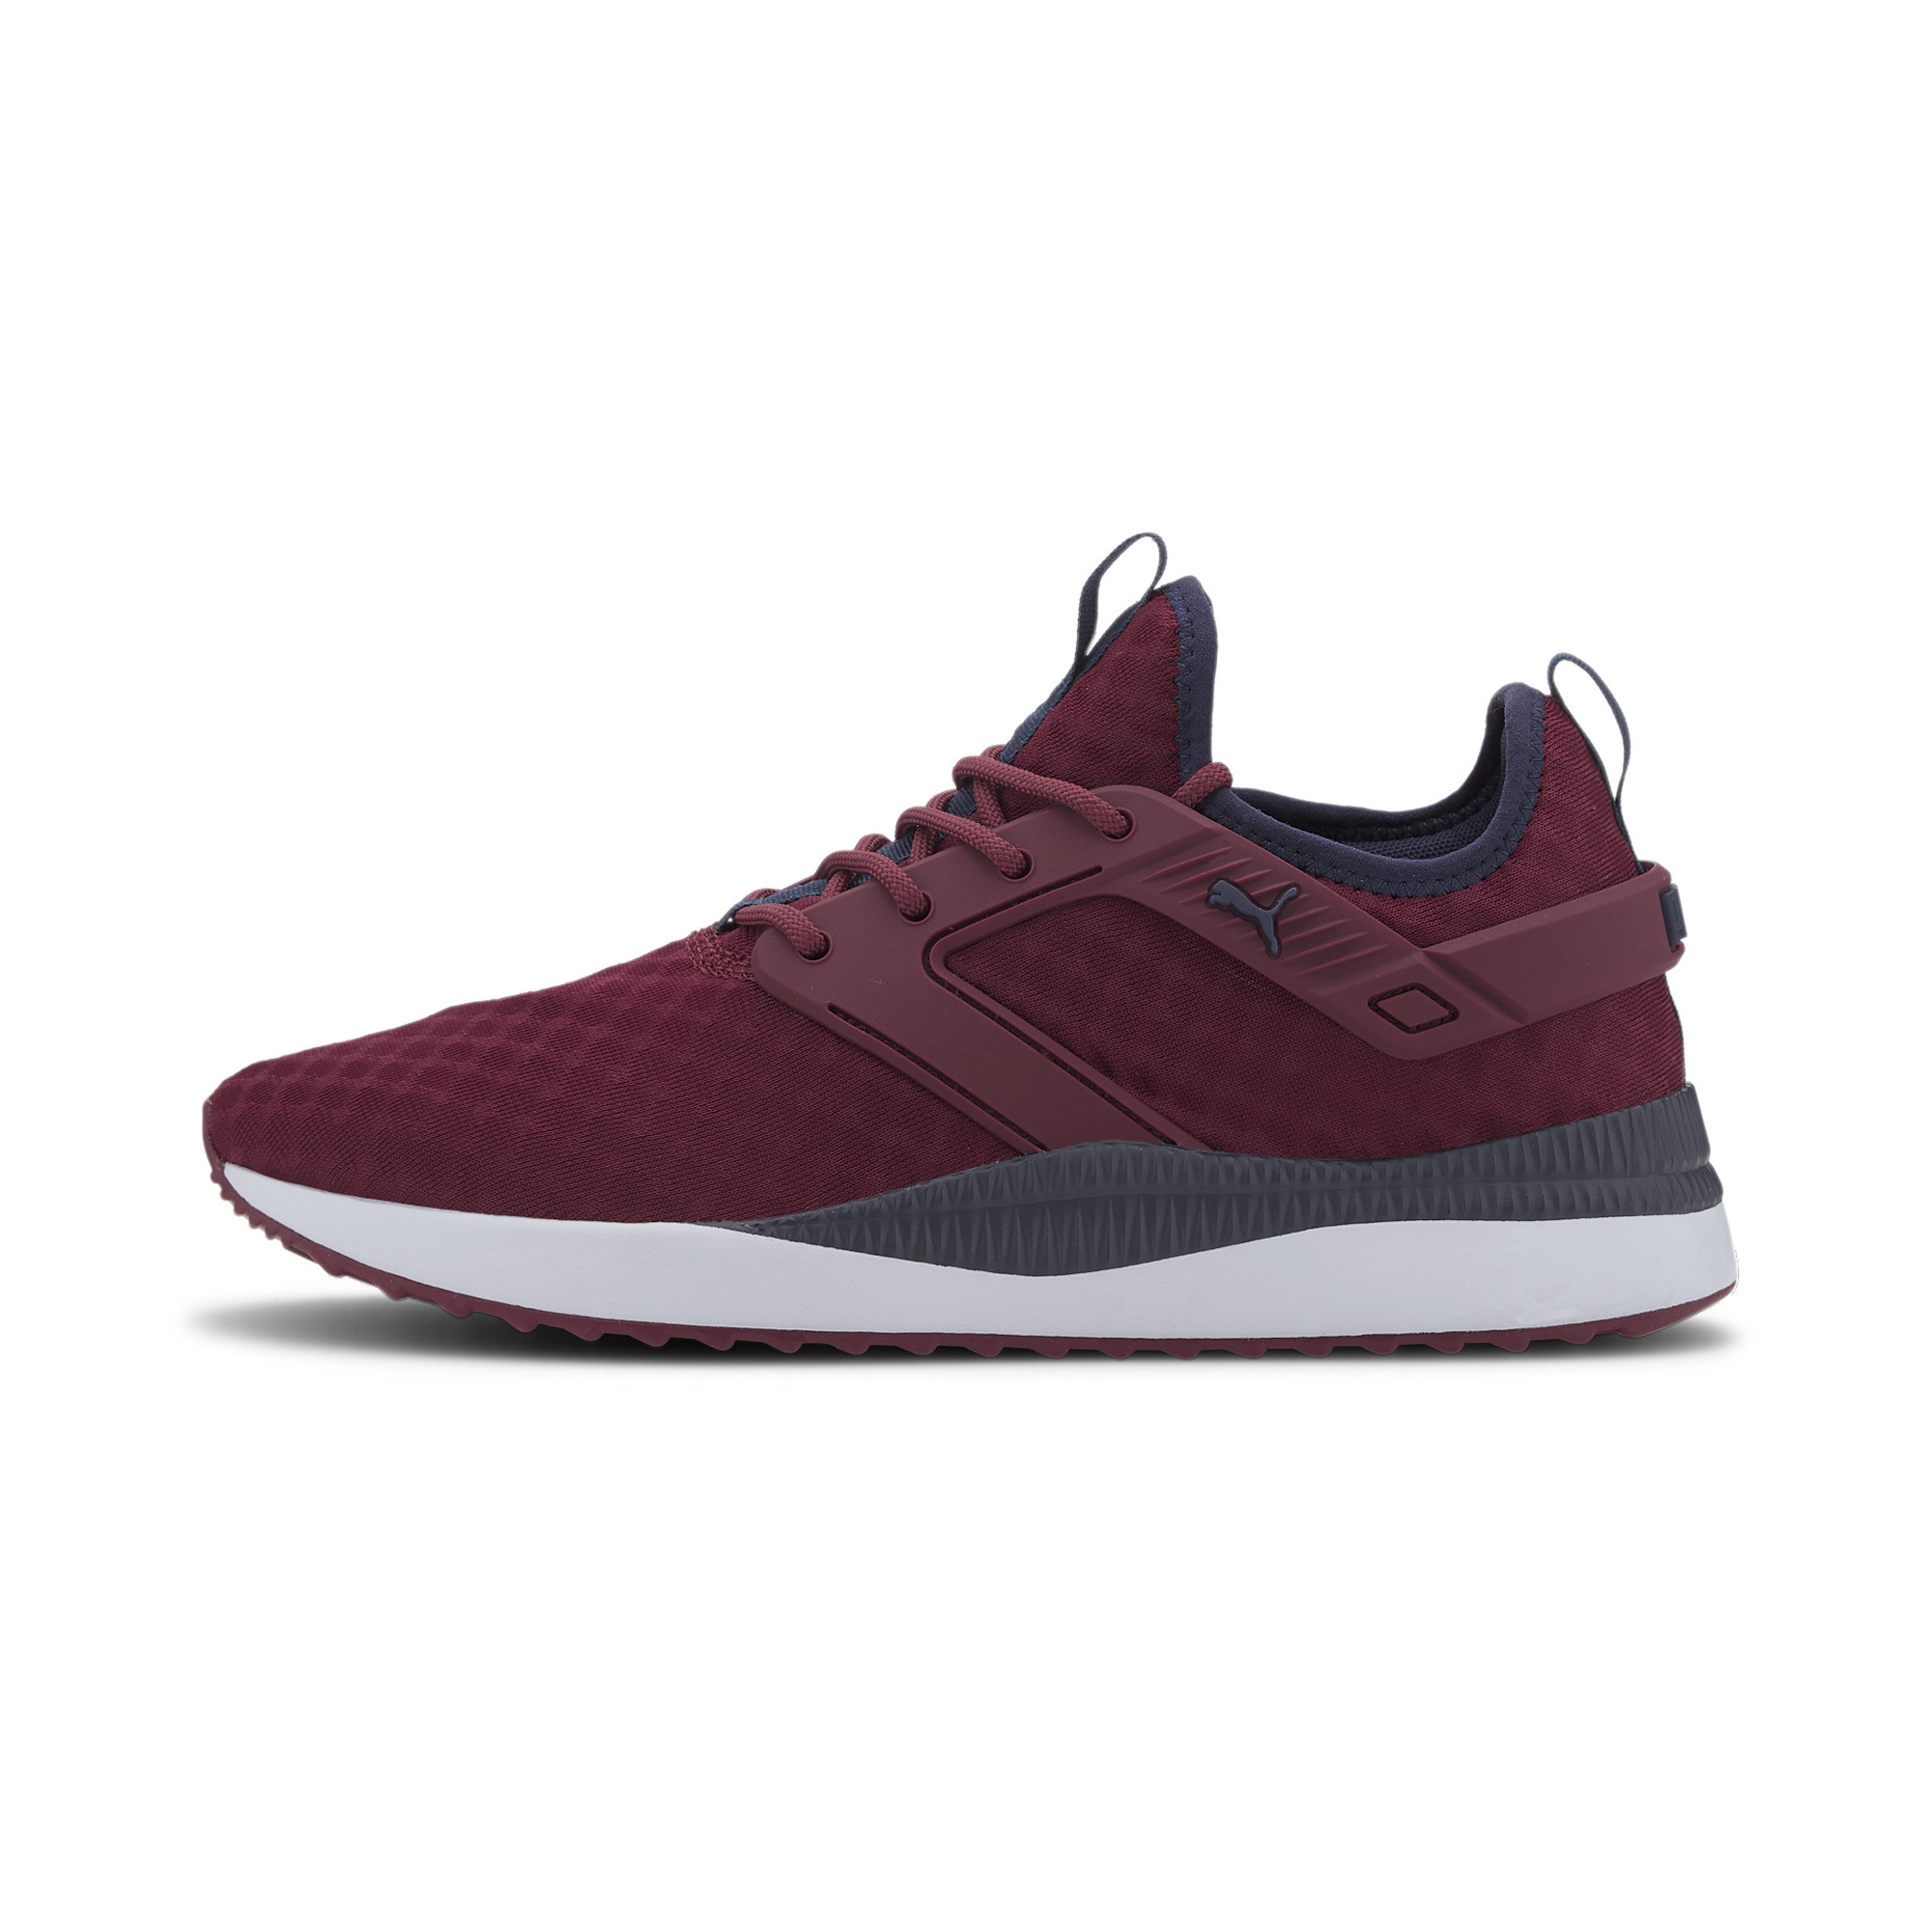 PUMA-Men-039-s-Pacer-Next-Excel-Core-Sneakers thumbnail 26